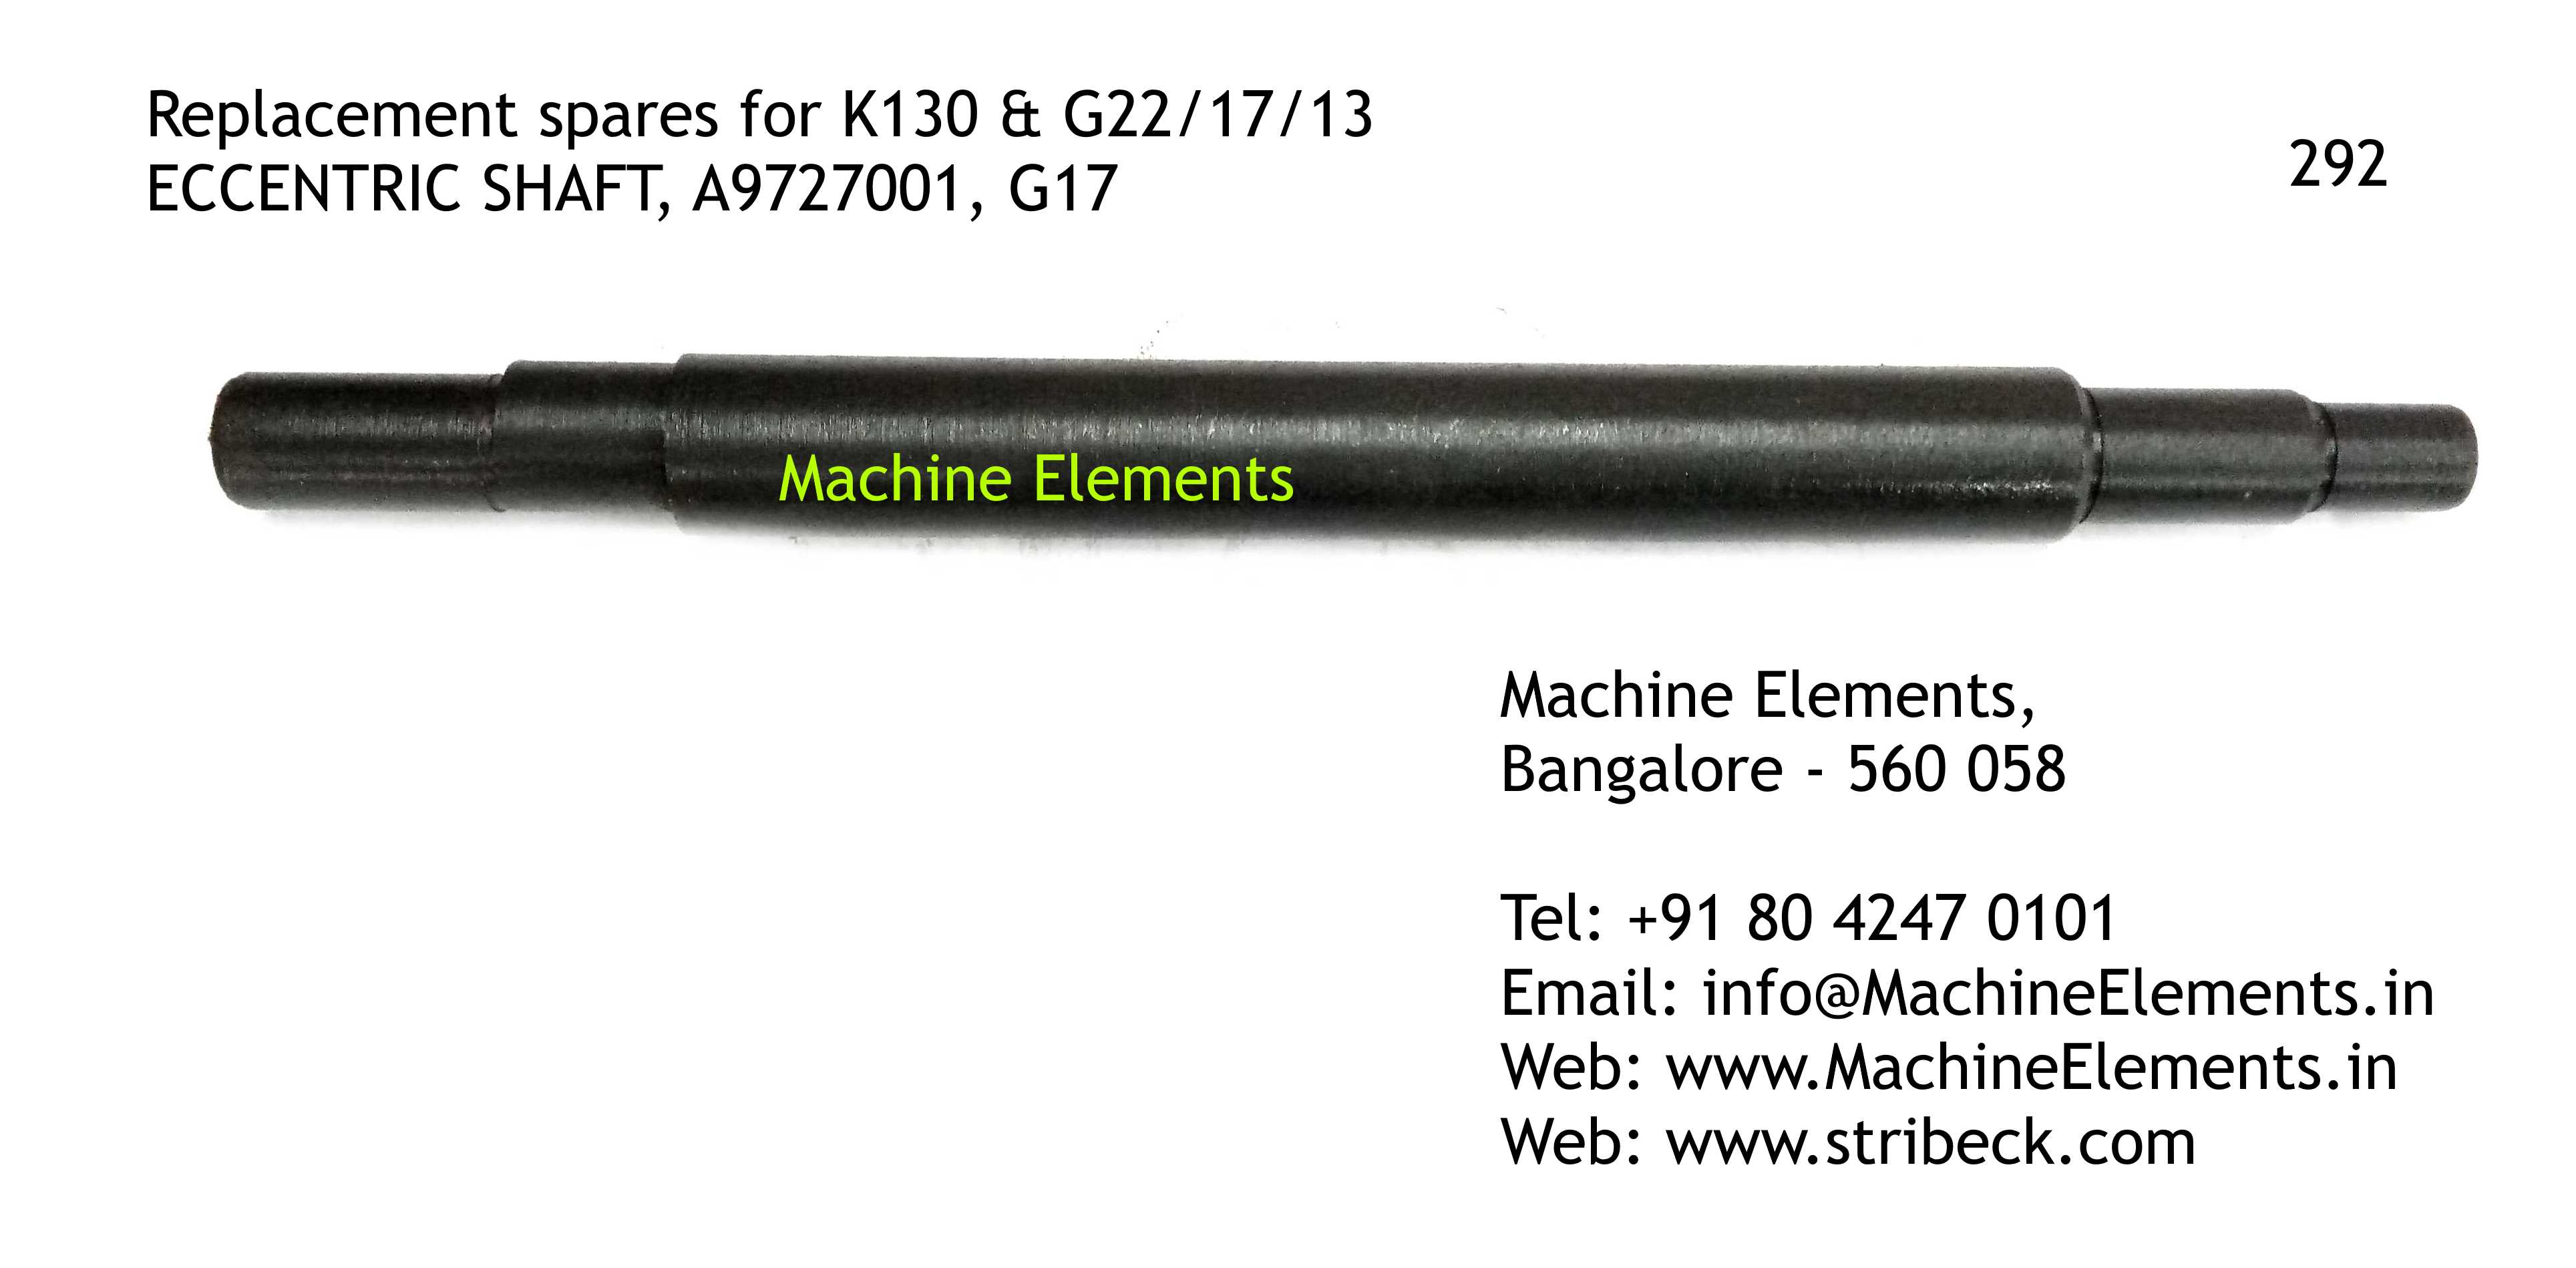 ECCENTRIC SHAFT, A9727001, G17